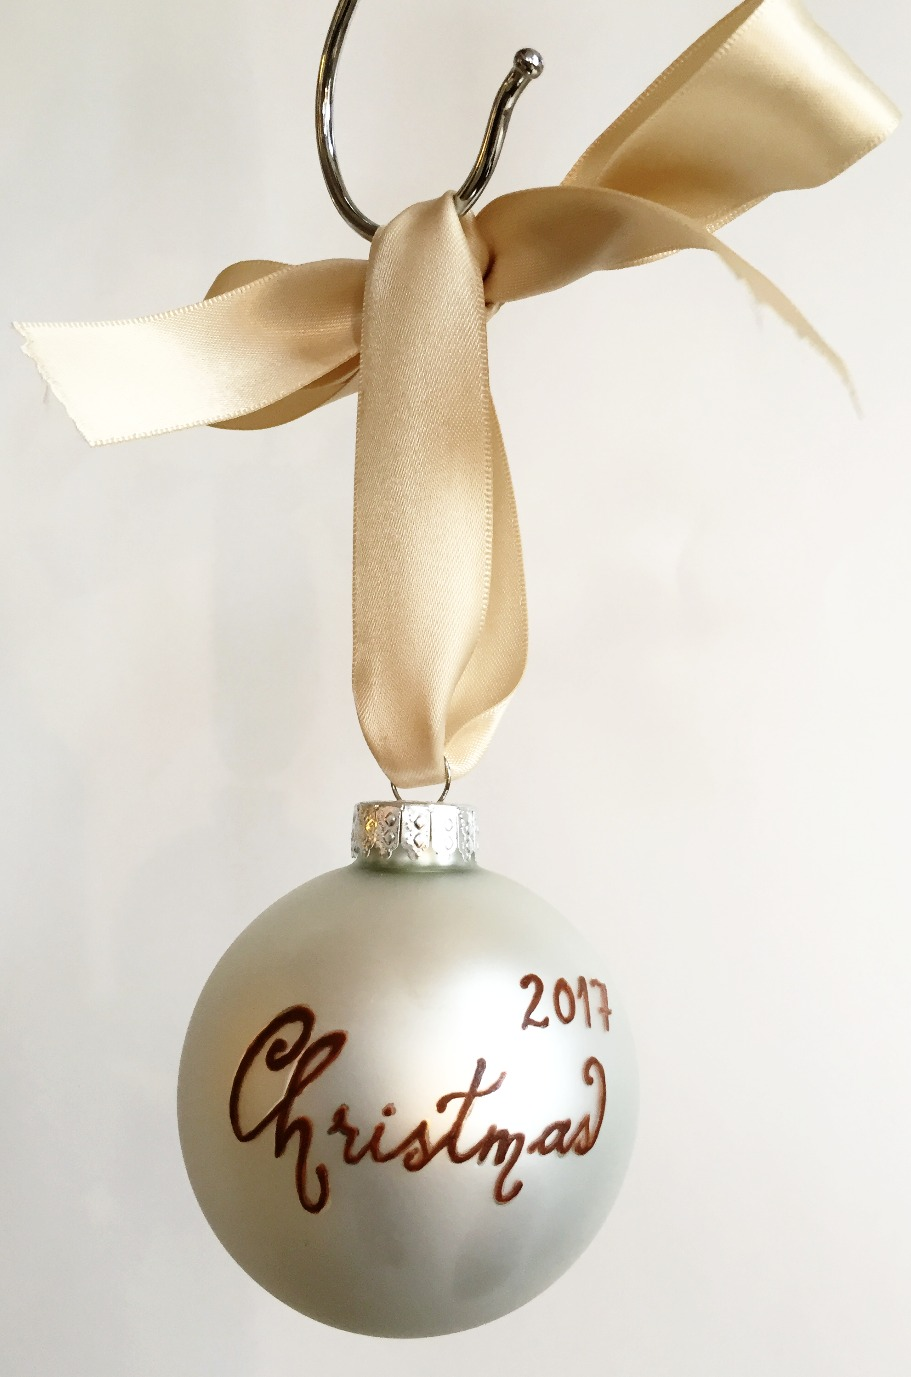 Christmas Ornament Text Closeup